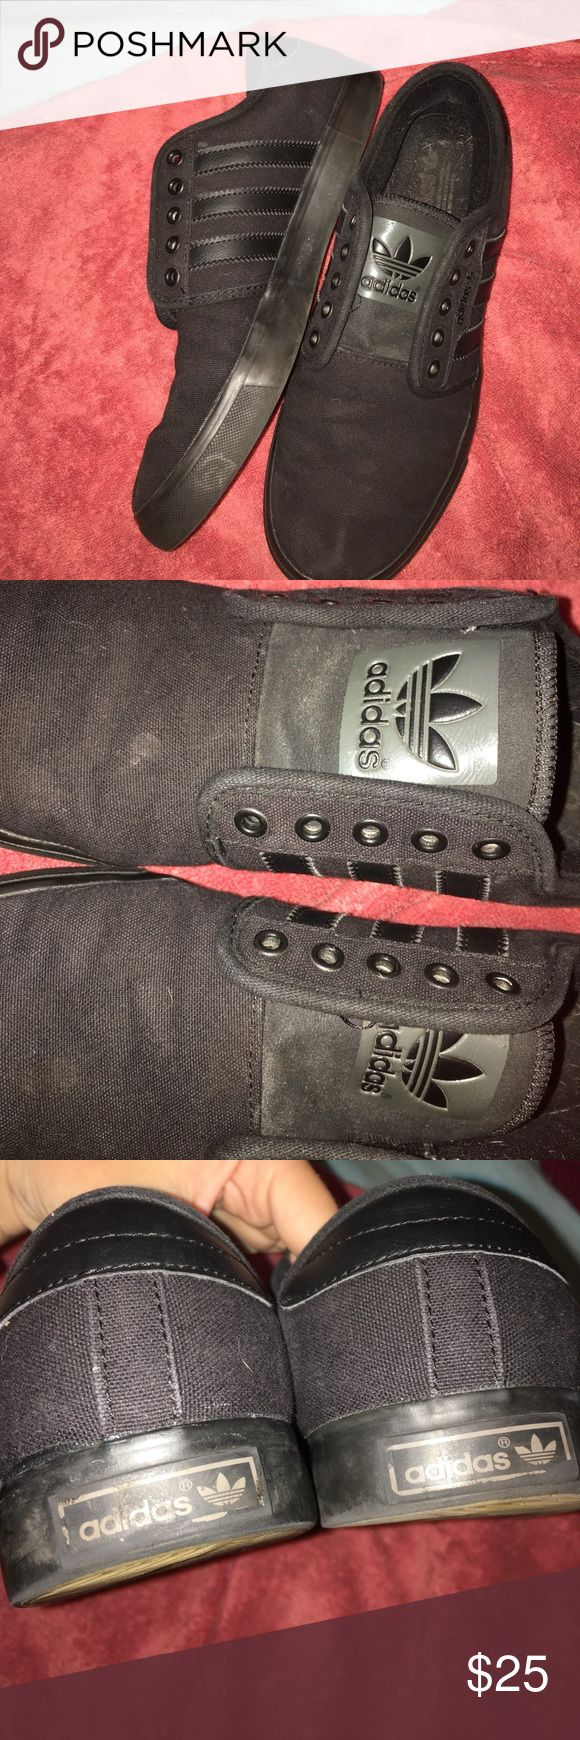 Adidas Seeley Skate Shoes Men's size 7.5 These are in great condition, I've only worn them a few times. They've been sitting in my closet for a year or so and haven't been worn in at all. Willing to discuss price! adidas Shoes Sneakers